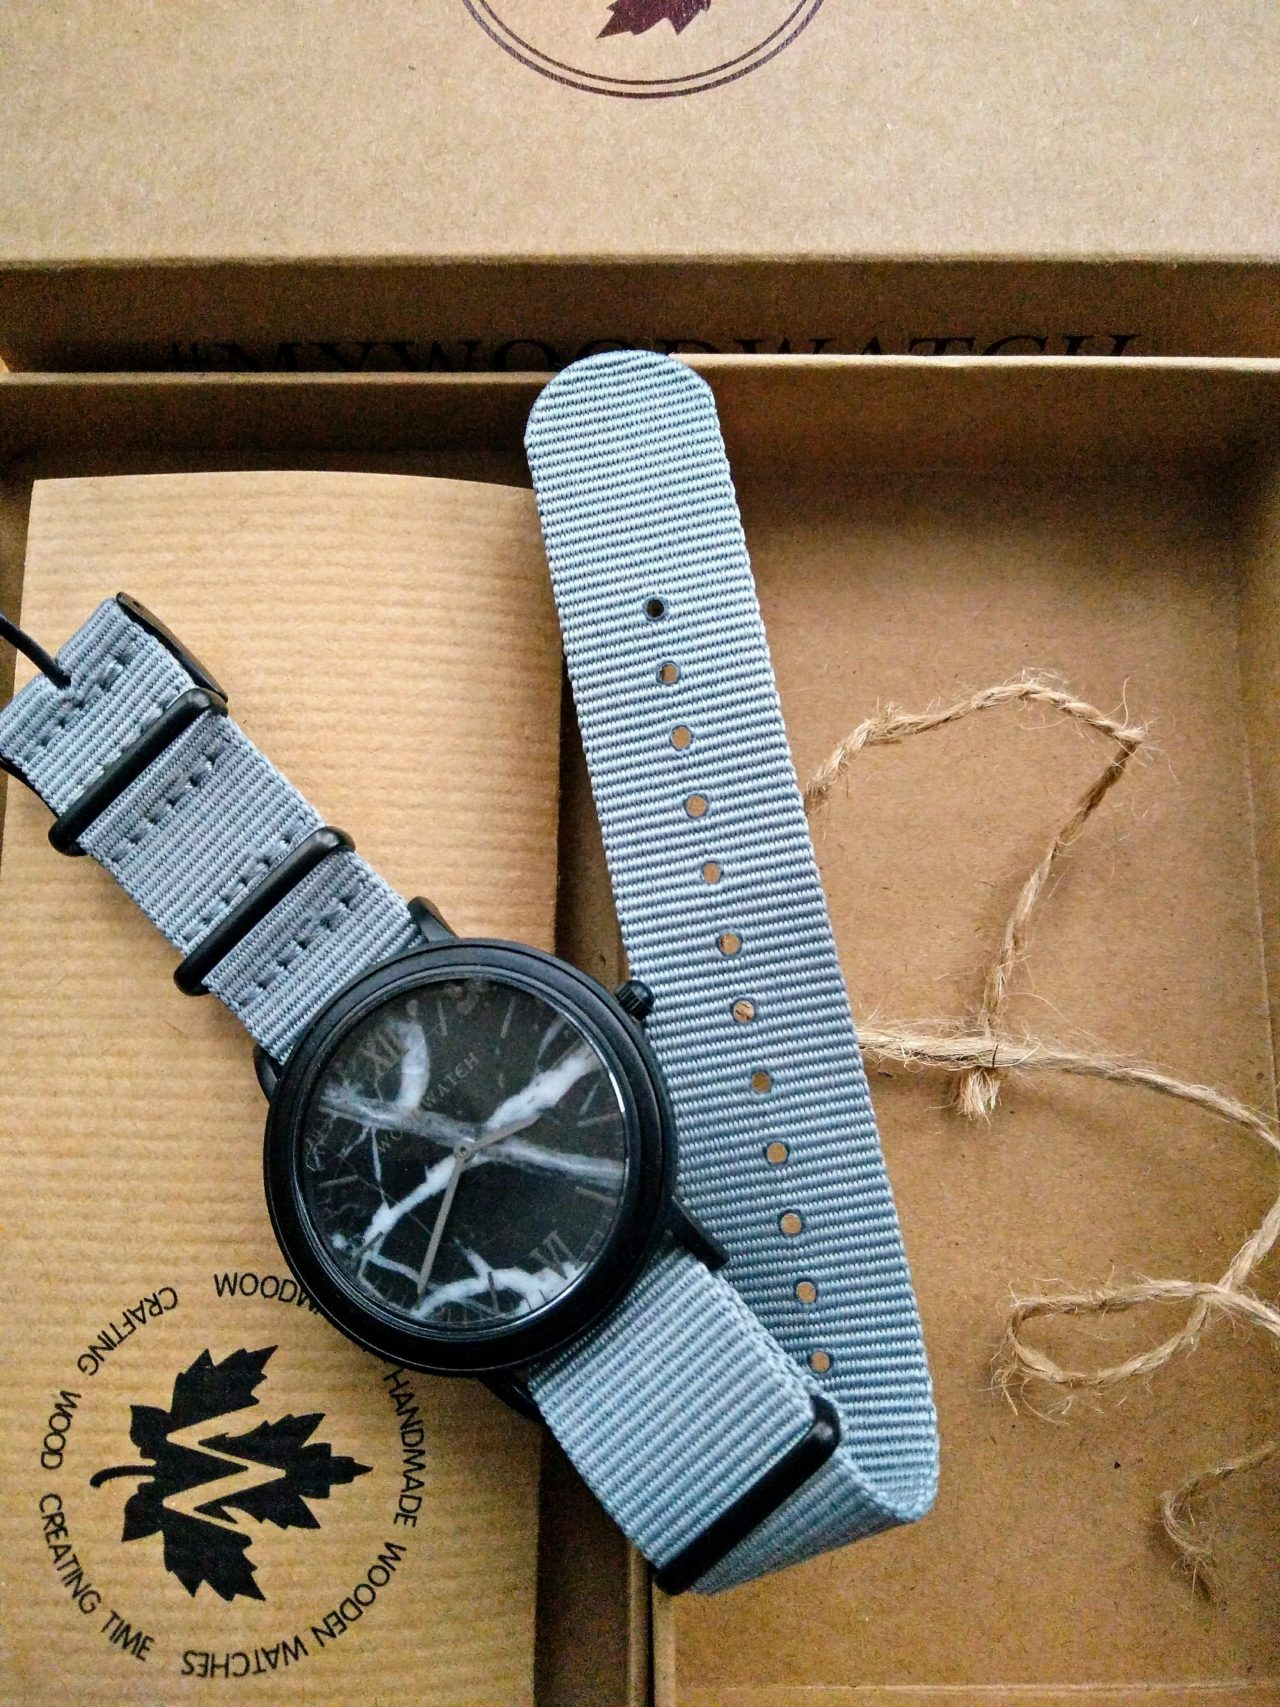 Affordable Wood Watch with Marble dial